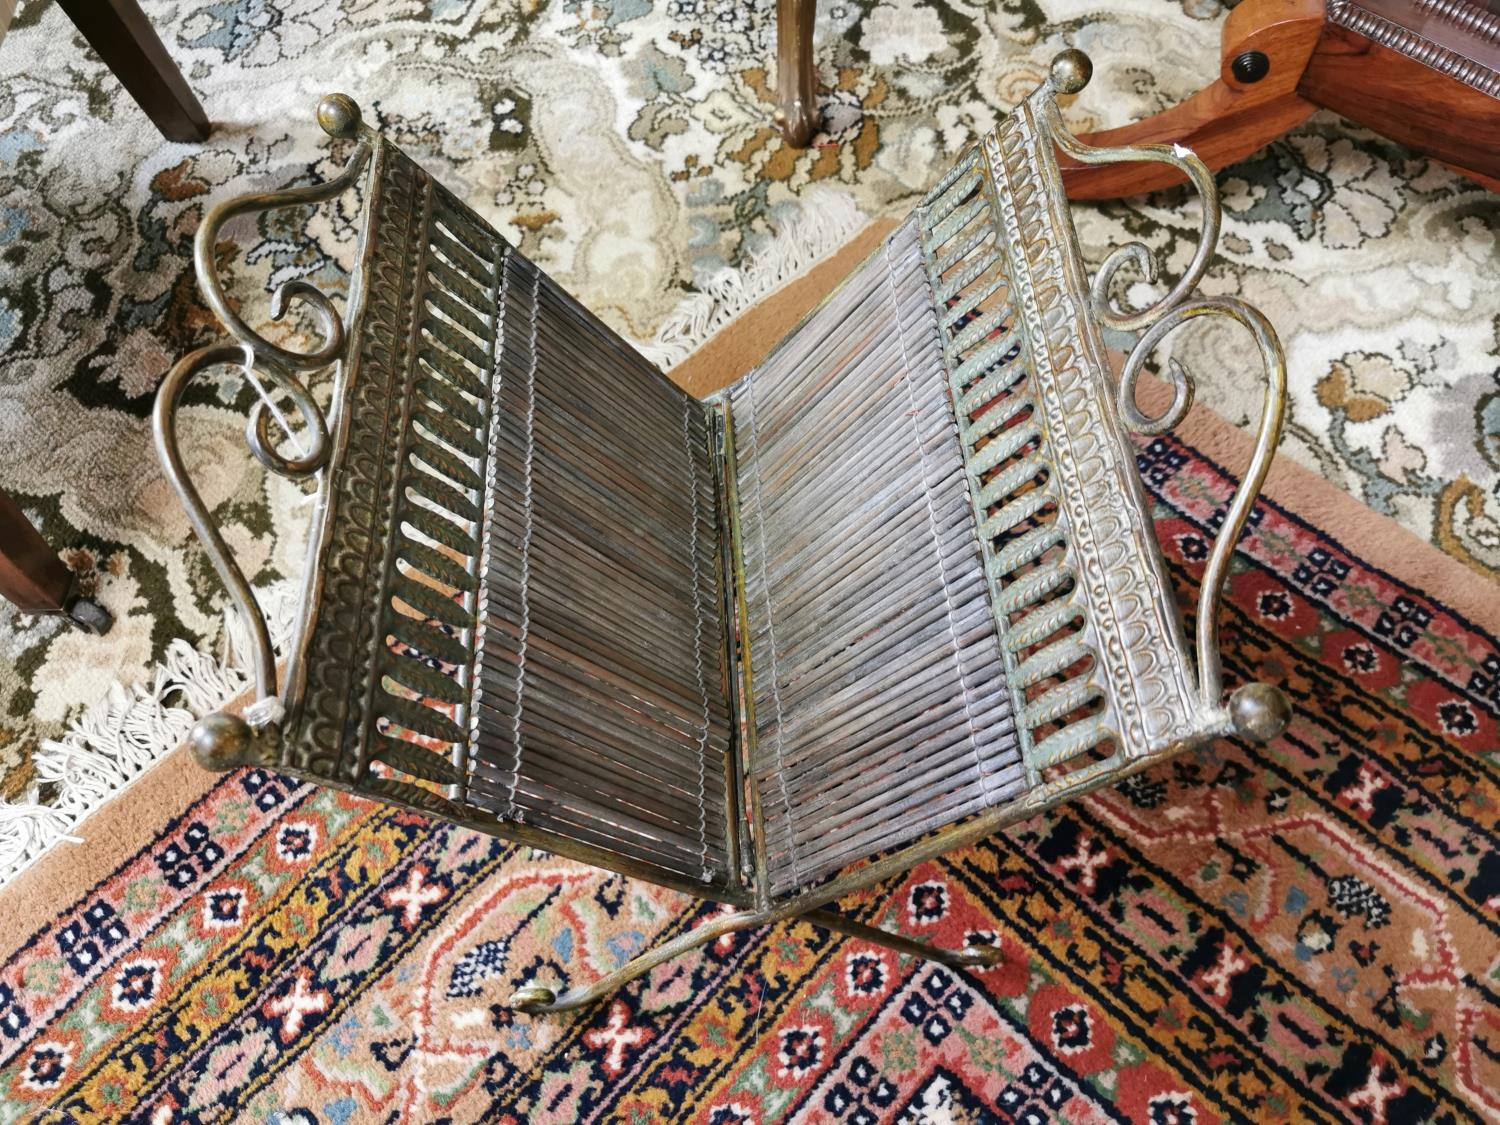 19th. C. brass and cane magazine rack - Image 2 of 2